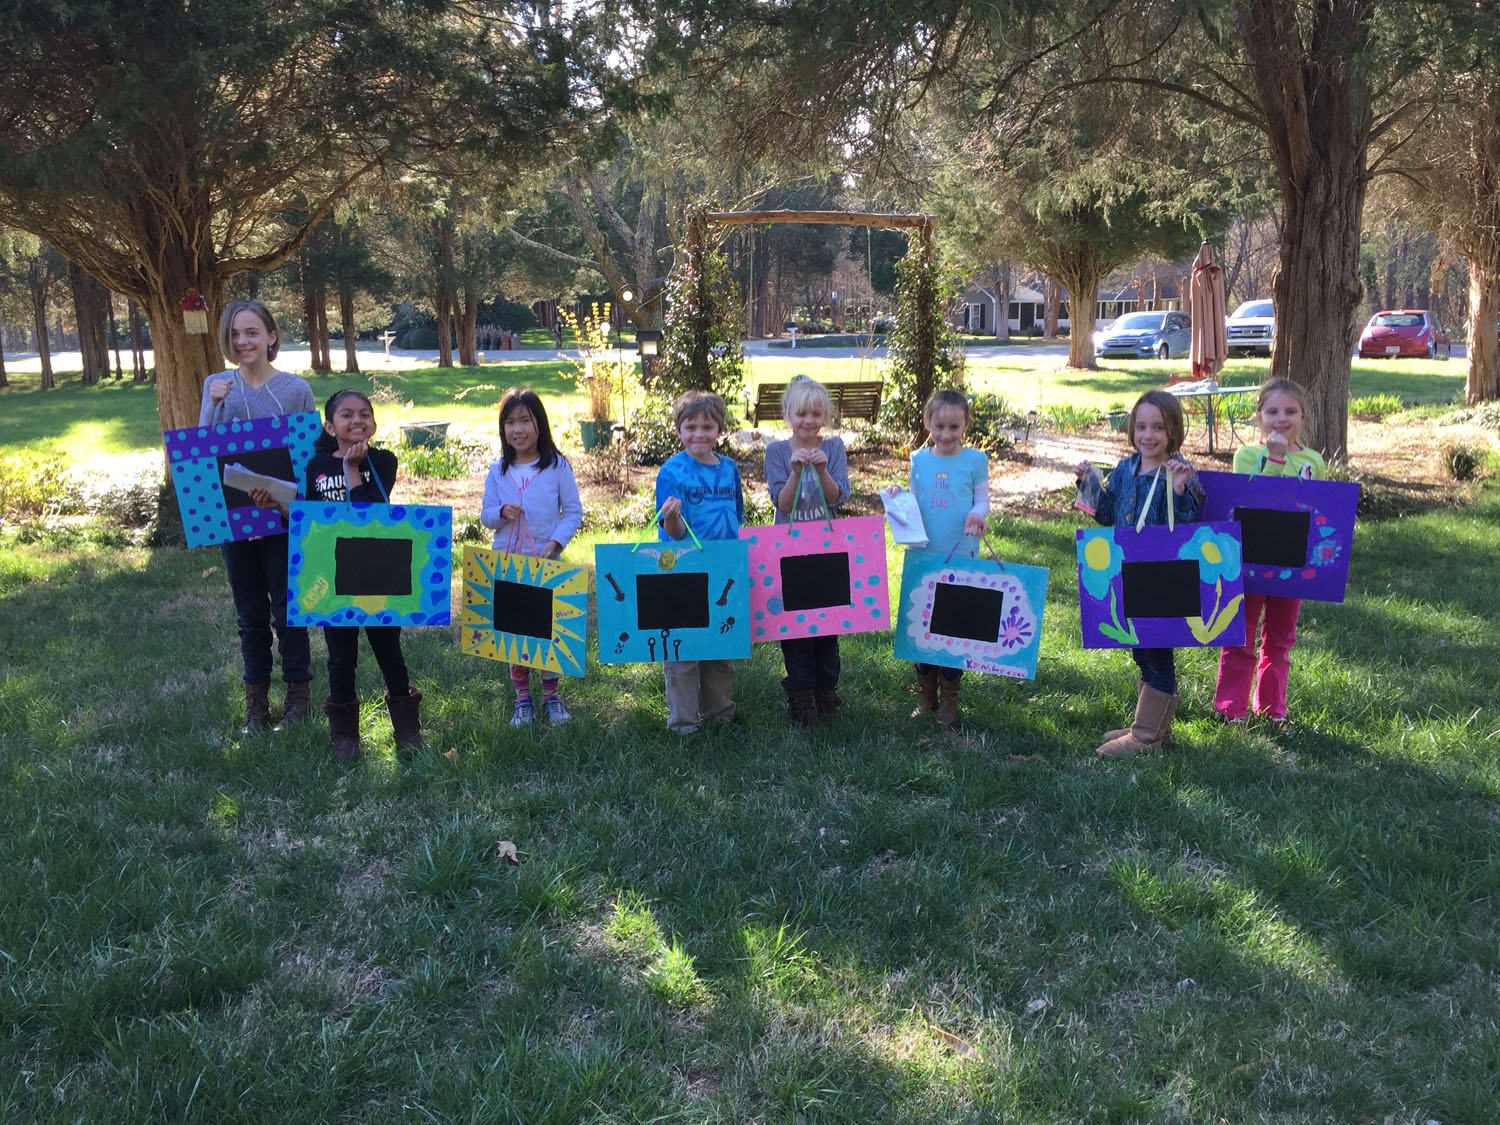 kids-showing-off-artwork-art-parties-classes-and-camps-in-greensboro-nc-with-artist-tracey-j-marshallIMG_9089.jpg